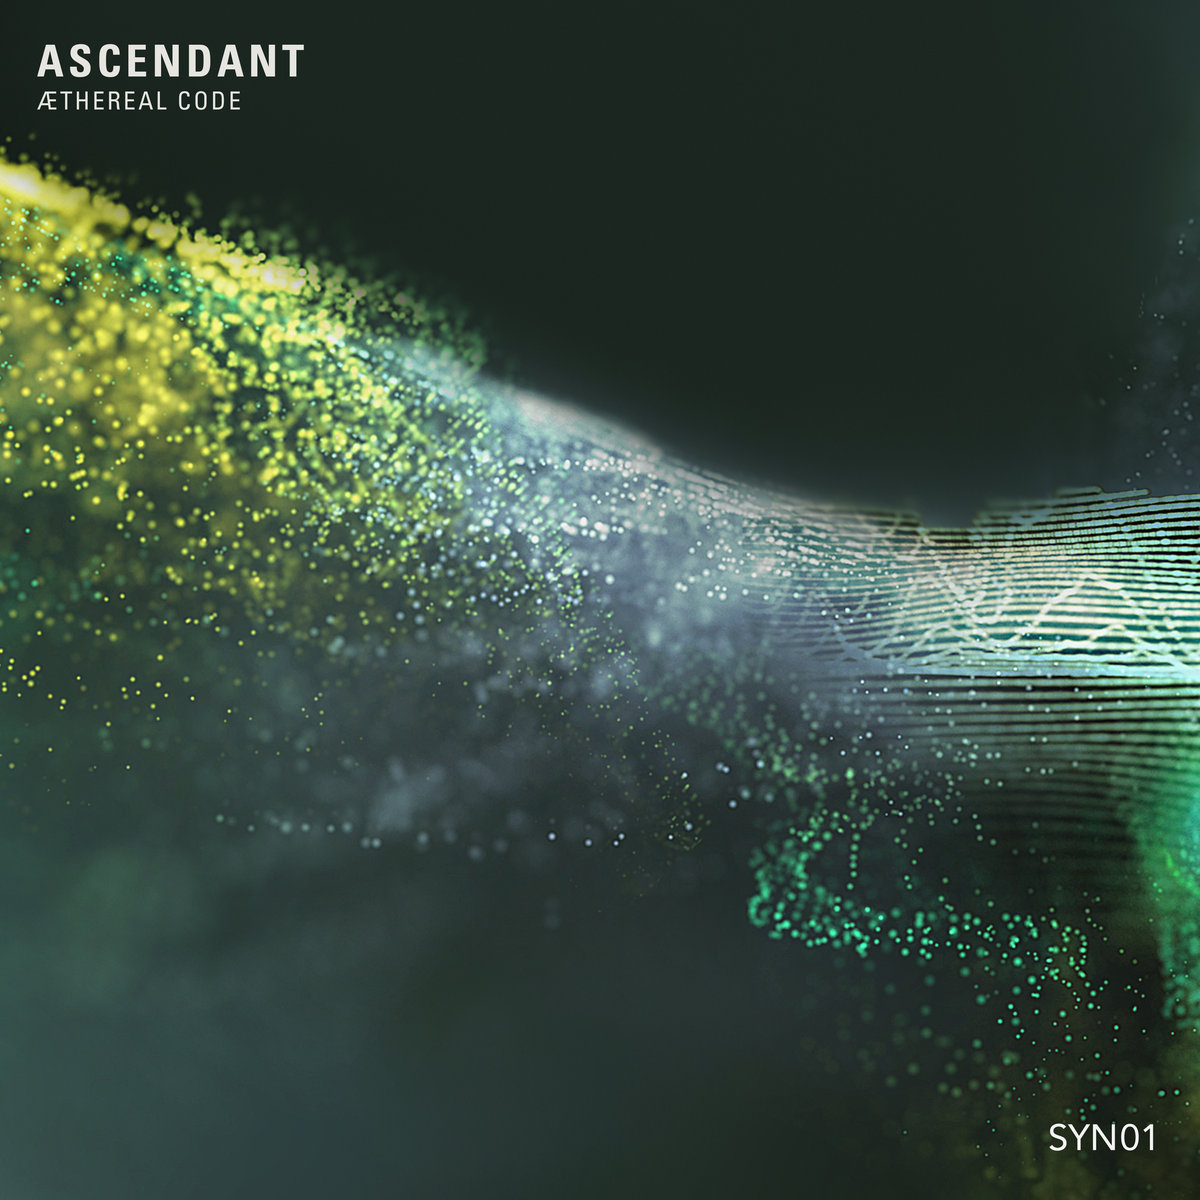 Ascendant - Alignment @ 'Æthereal Code' album (ambient, ambientascendant)